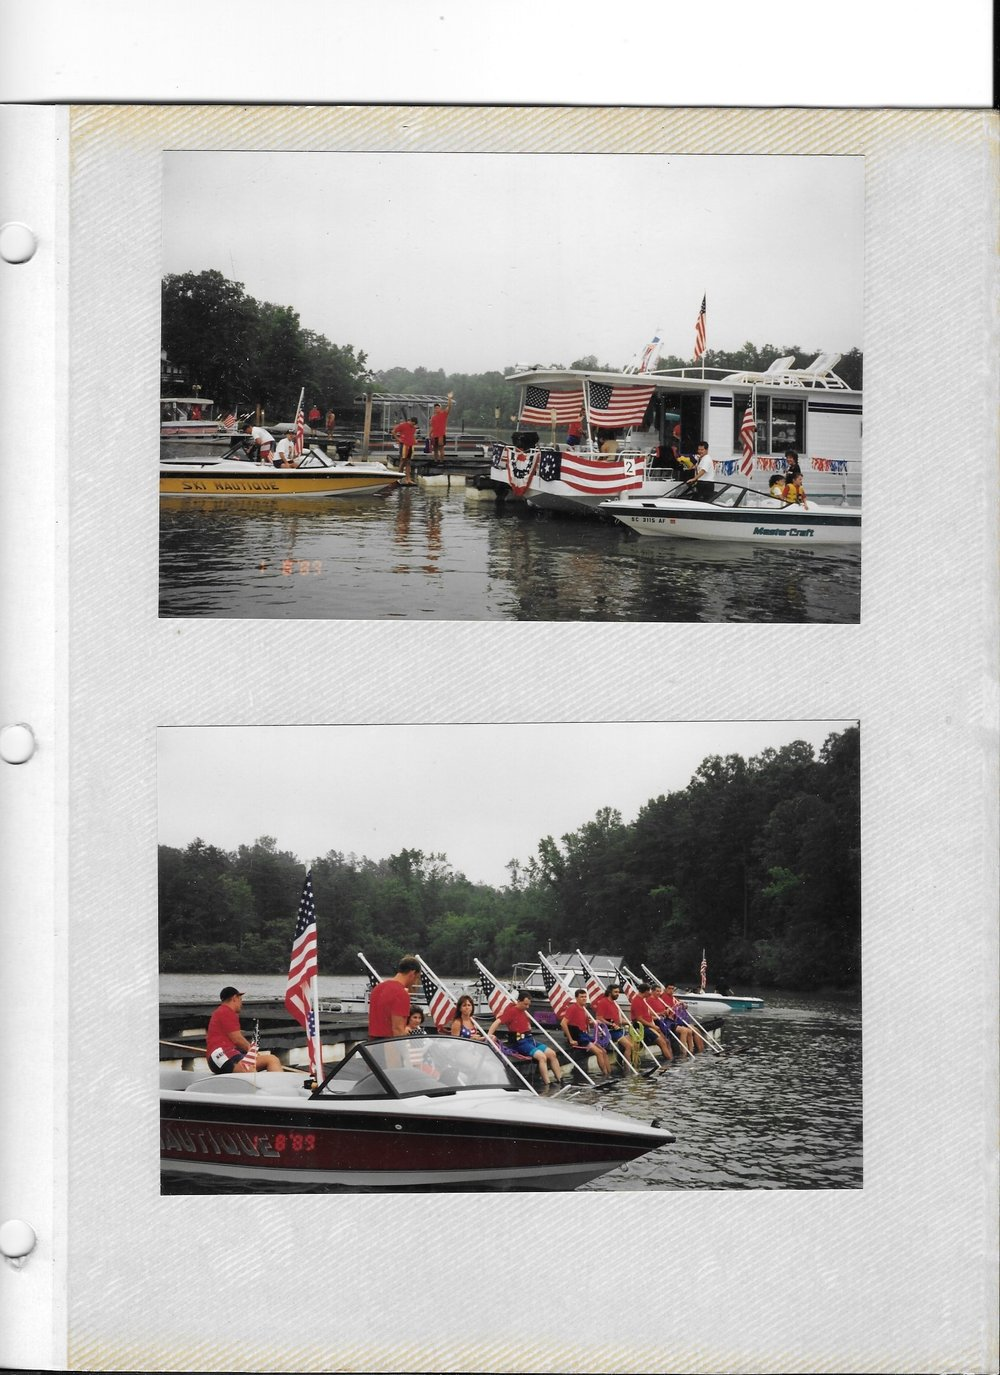 1st Lake Wylie Ski Club Flag Line 1995.jpg